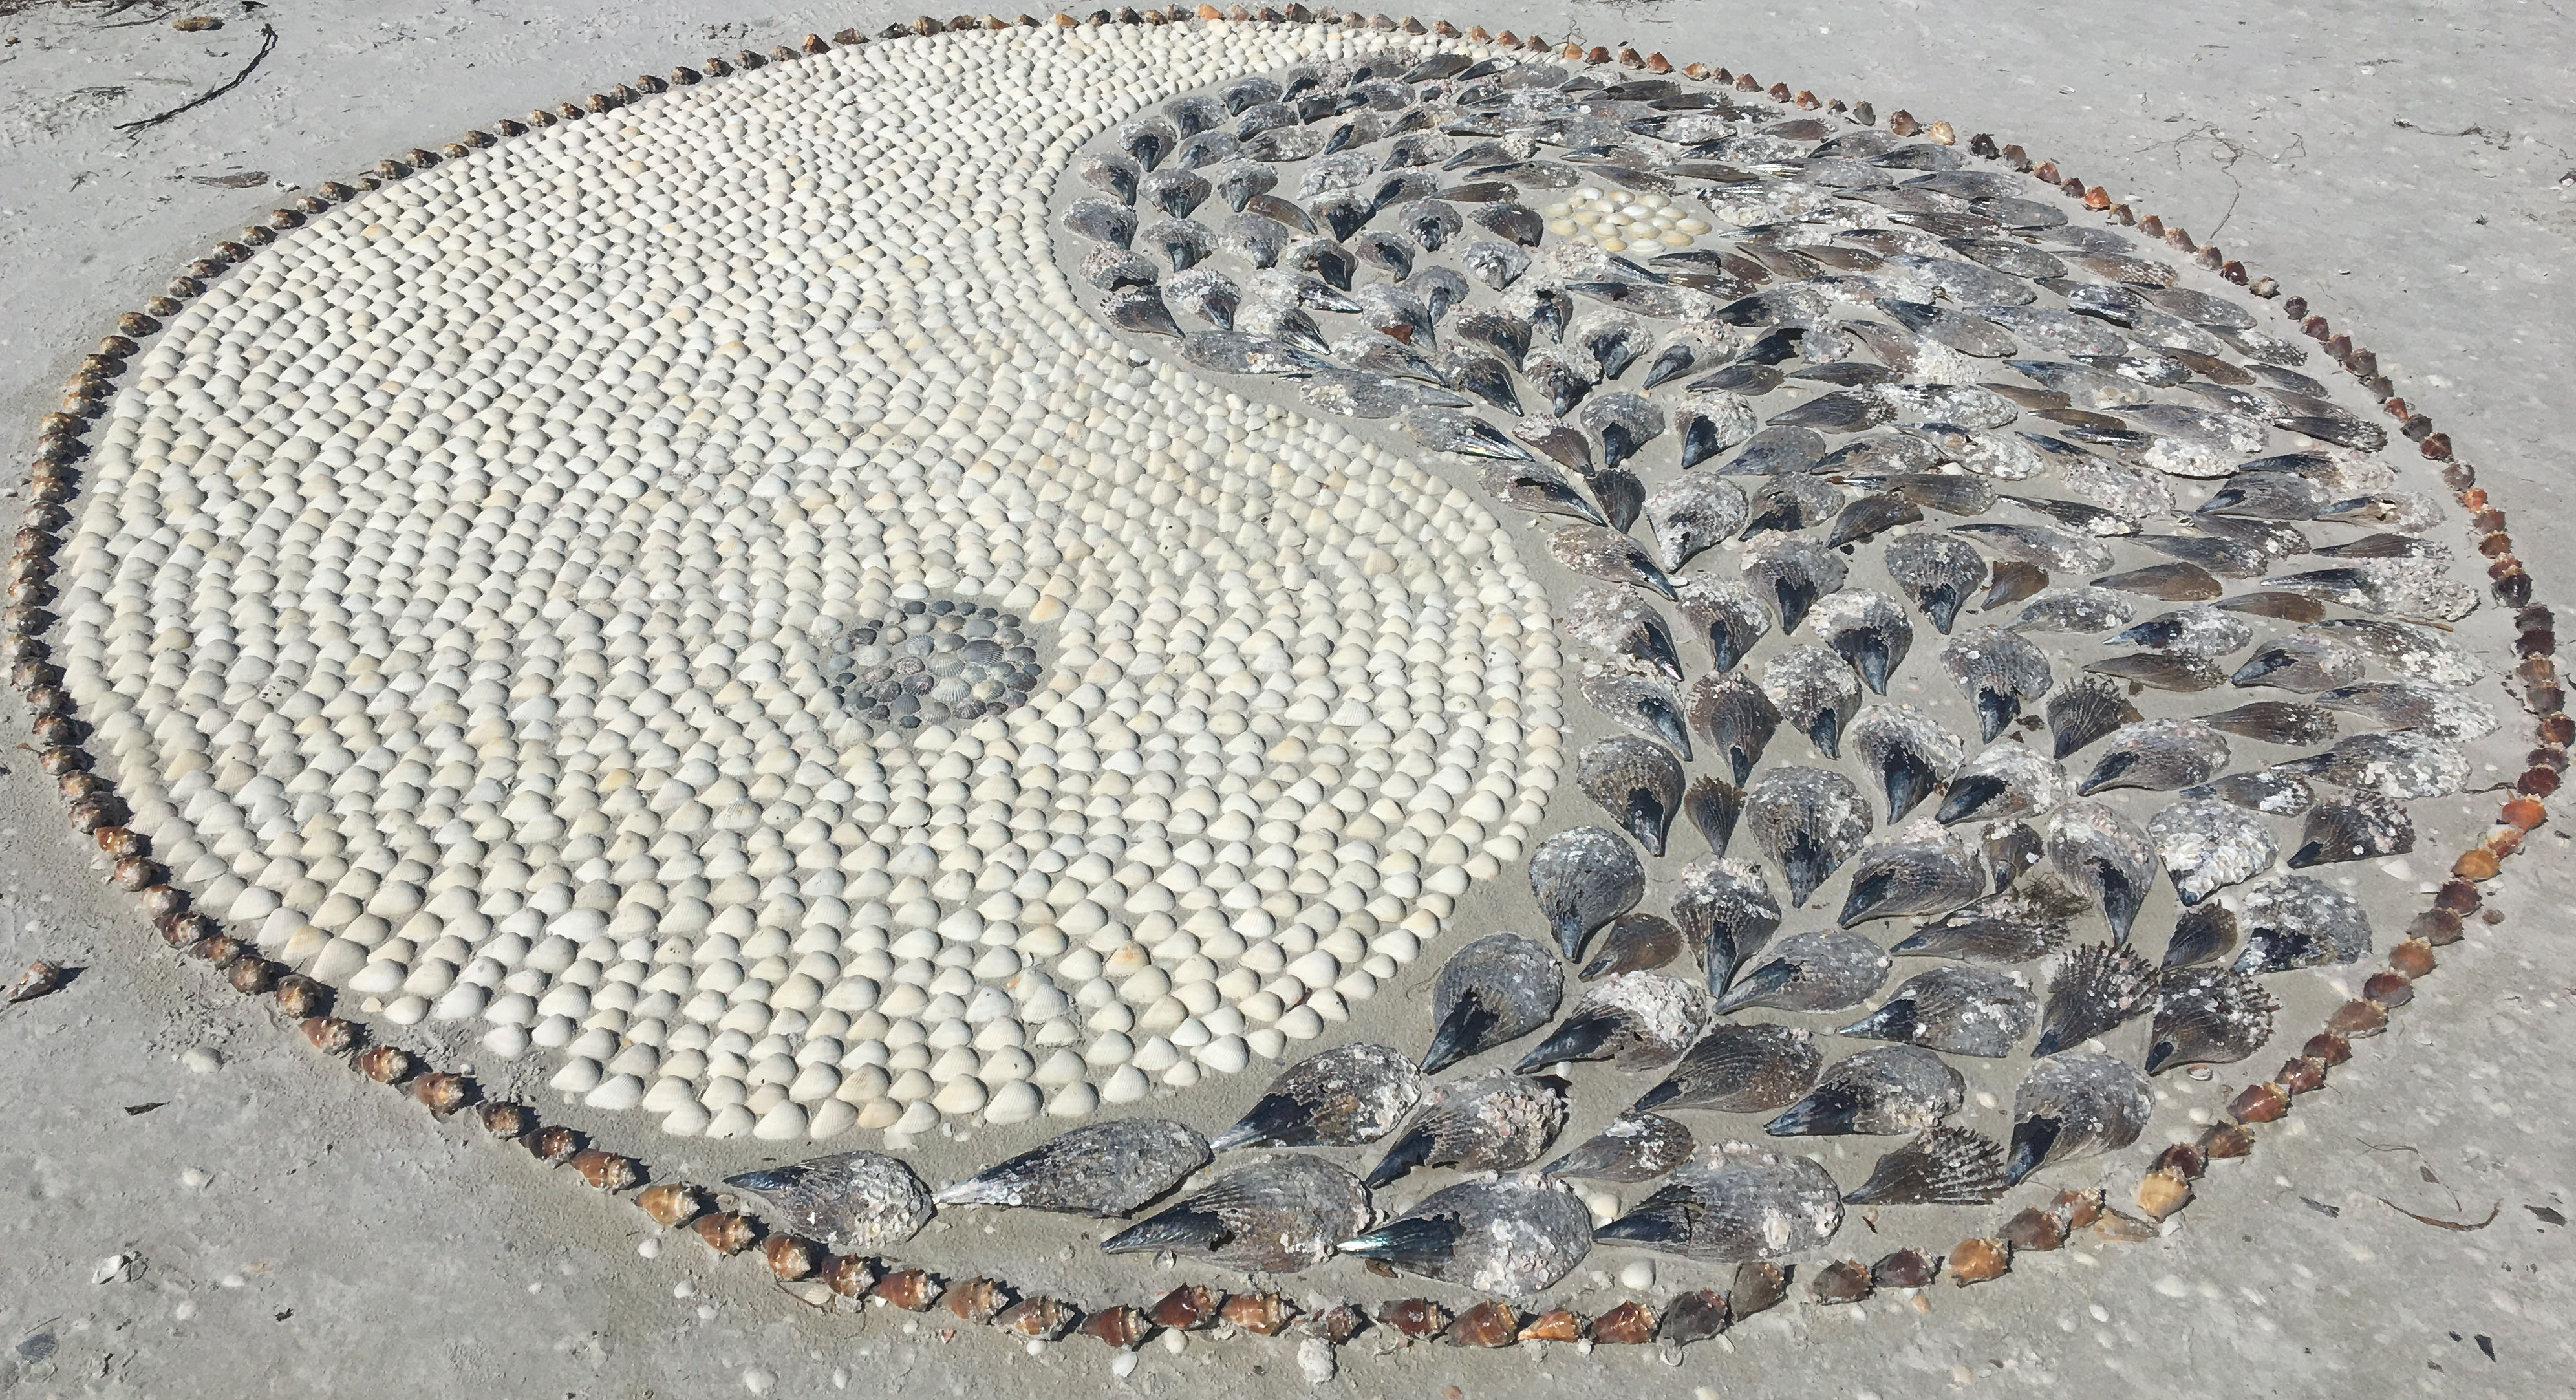 Artistic Seashell Sculptures are possible because of the abundance of shells on Sanibel Island